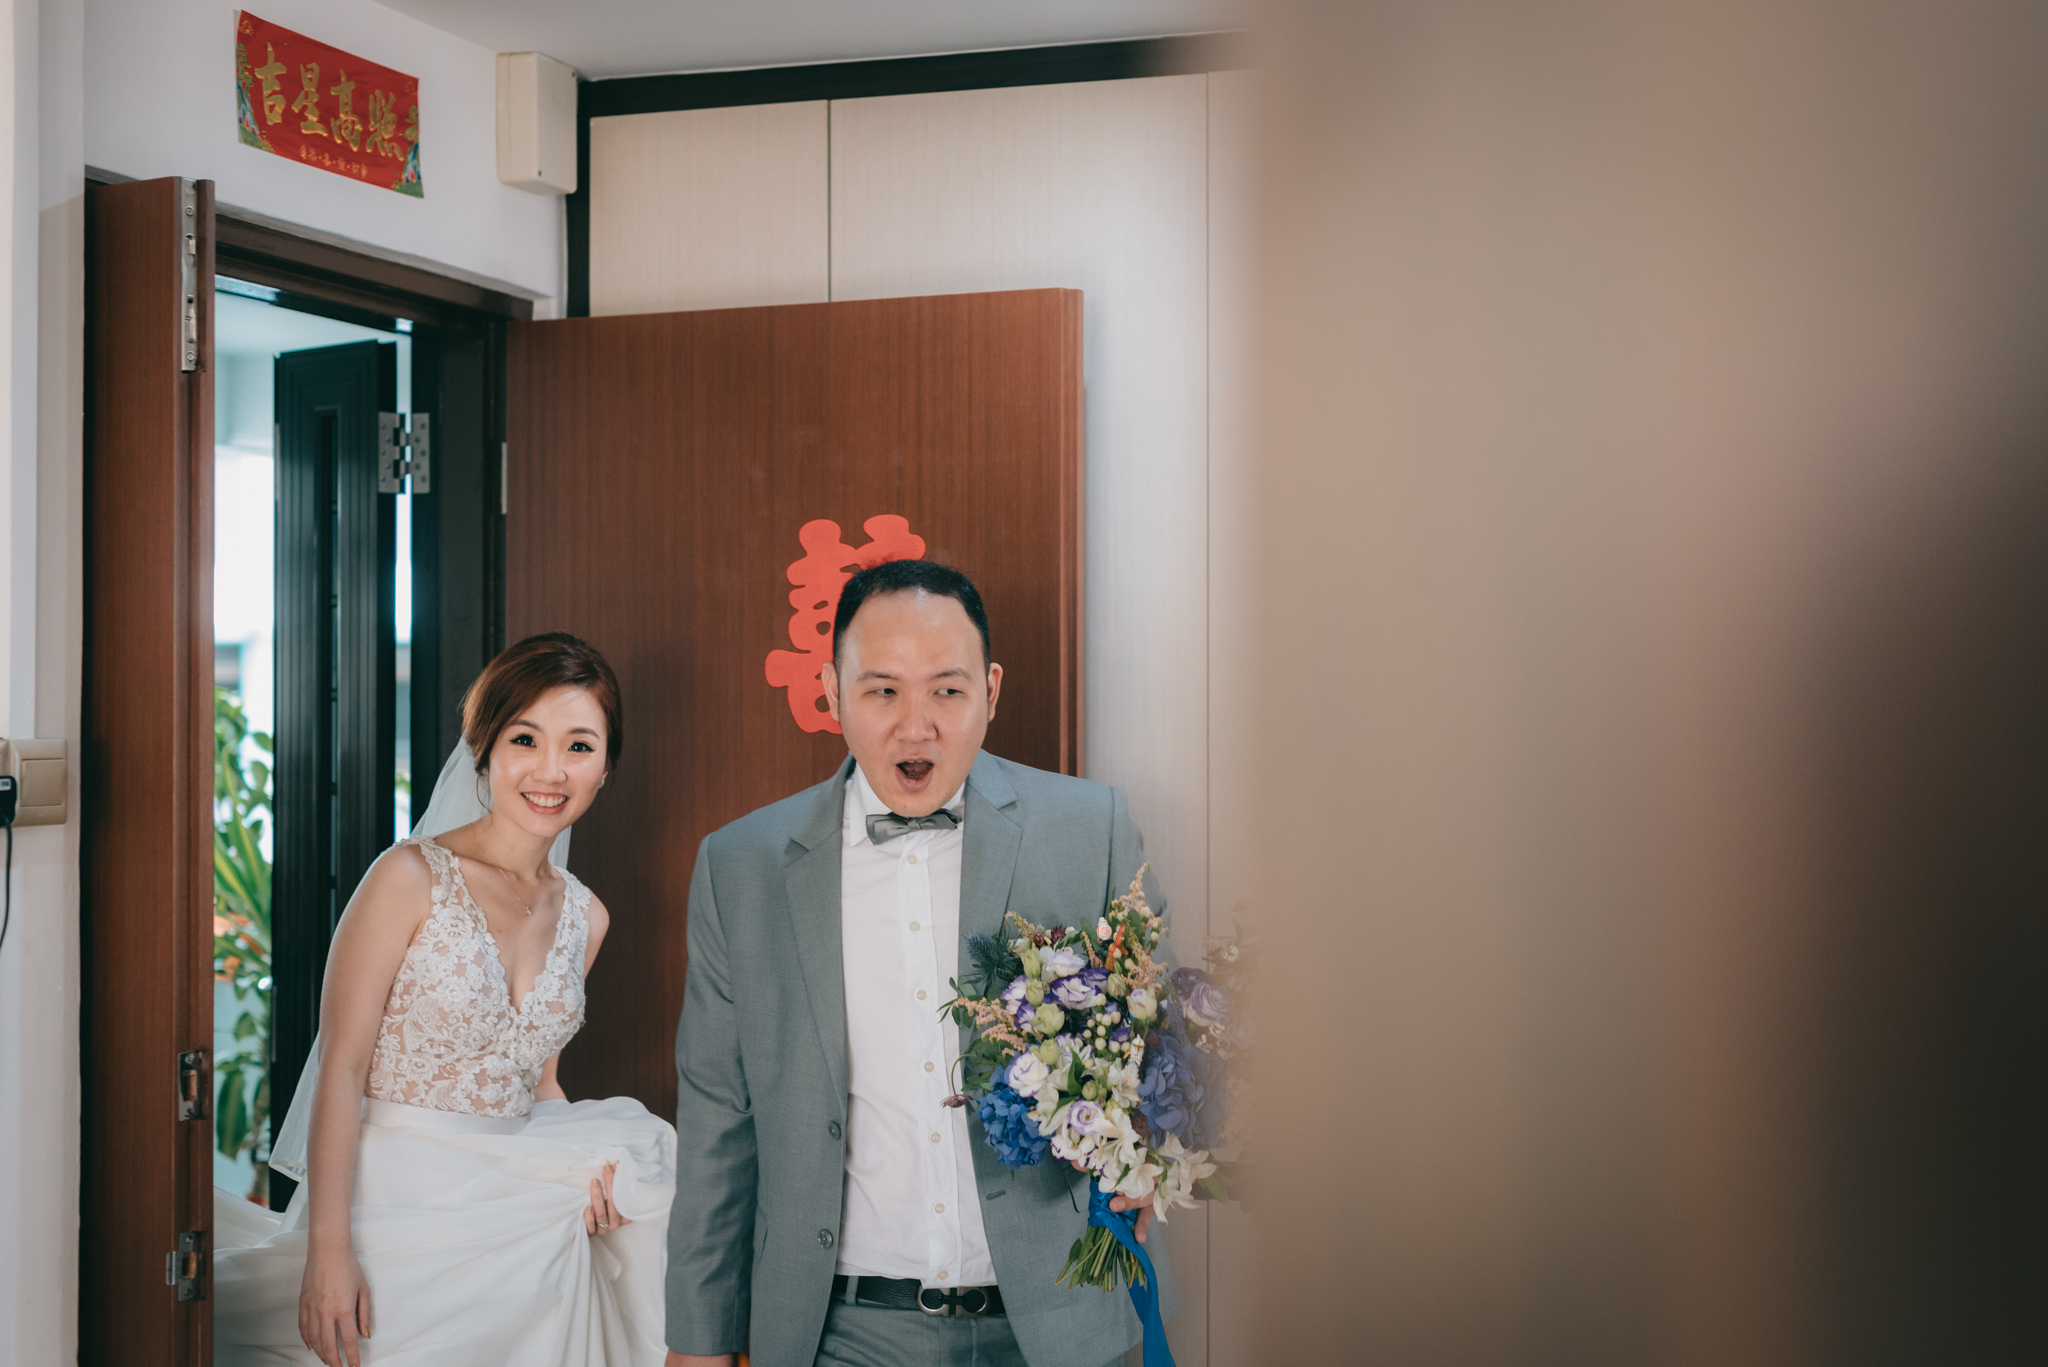 Eunice & Winshire Wedding Day Highlights (resized for sharing) - 088.jpg